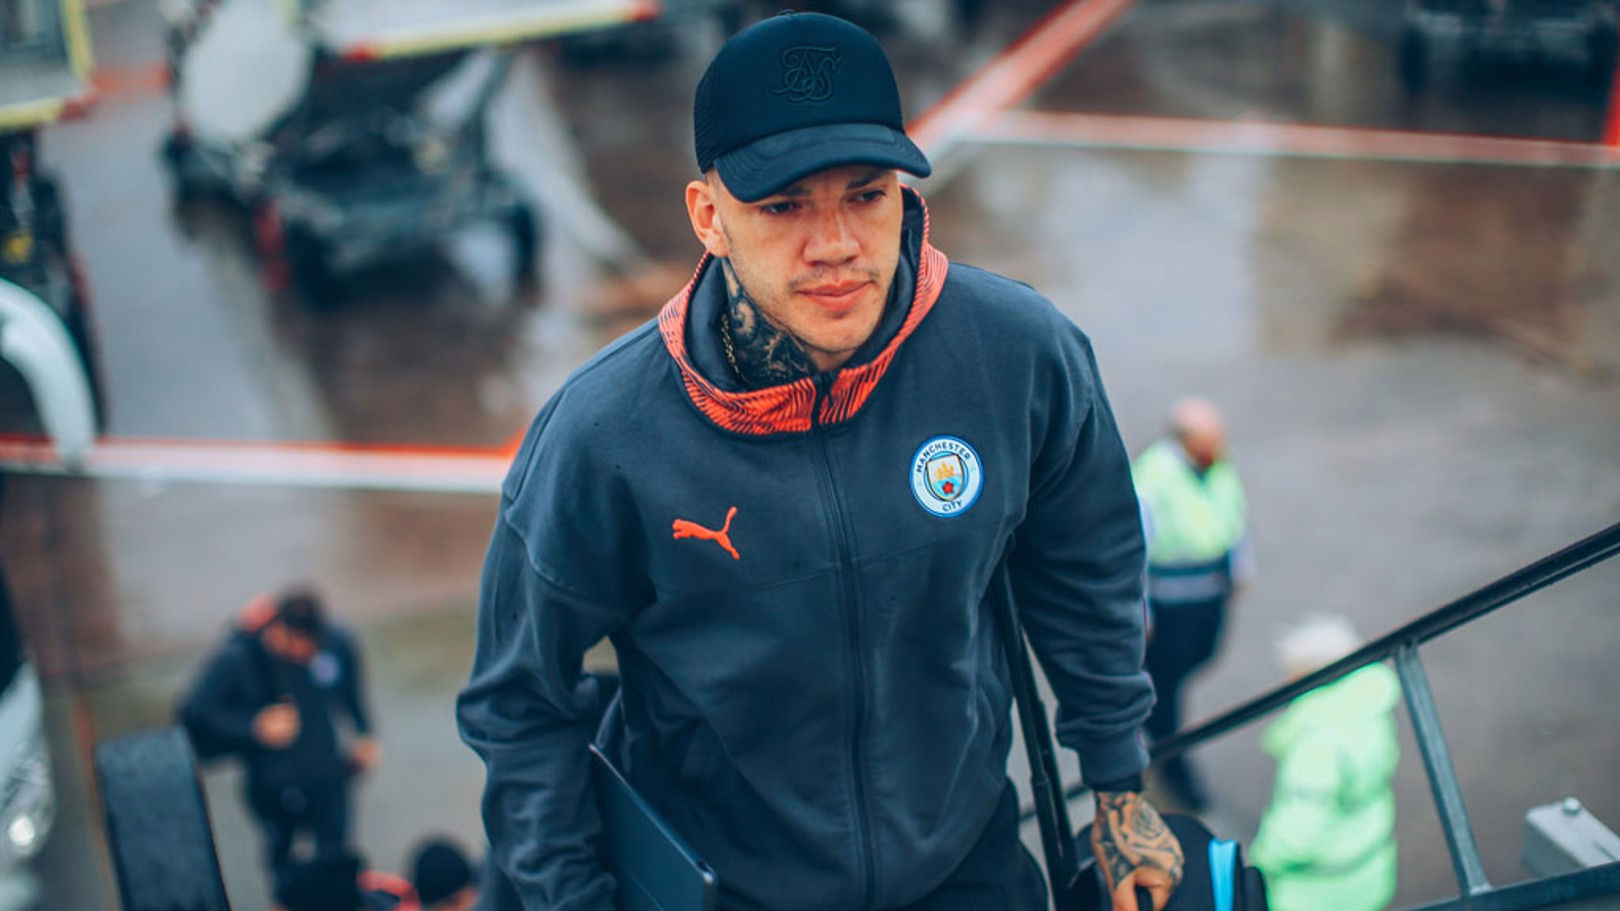 CAP THAT: Ederson sported a neat looking baseball cap as he boarded the aircraft